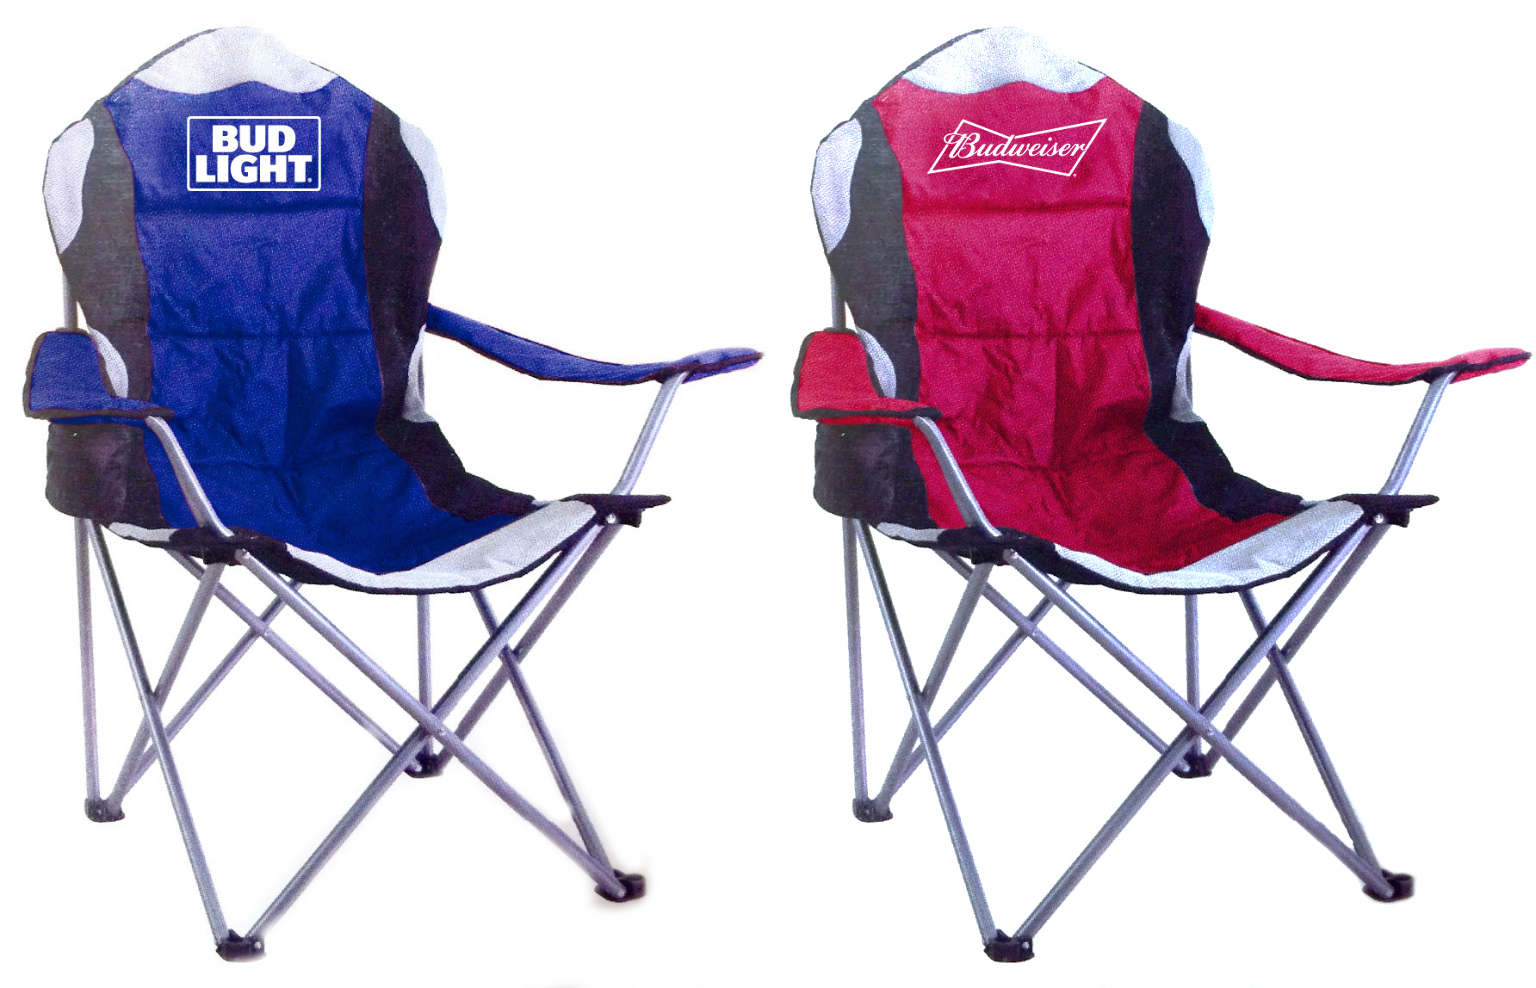 Budweiser/Bud Light Deluxe Tailgate Chairs - Assorted Brand Styles Case Pack 4